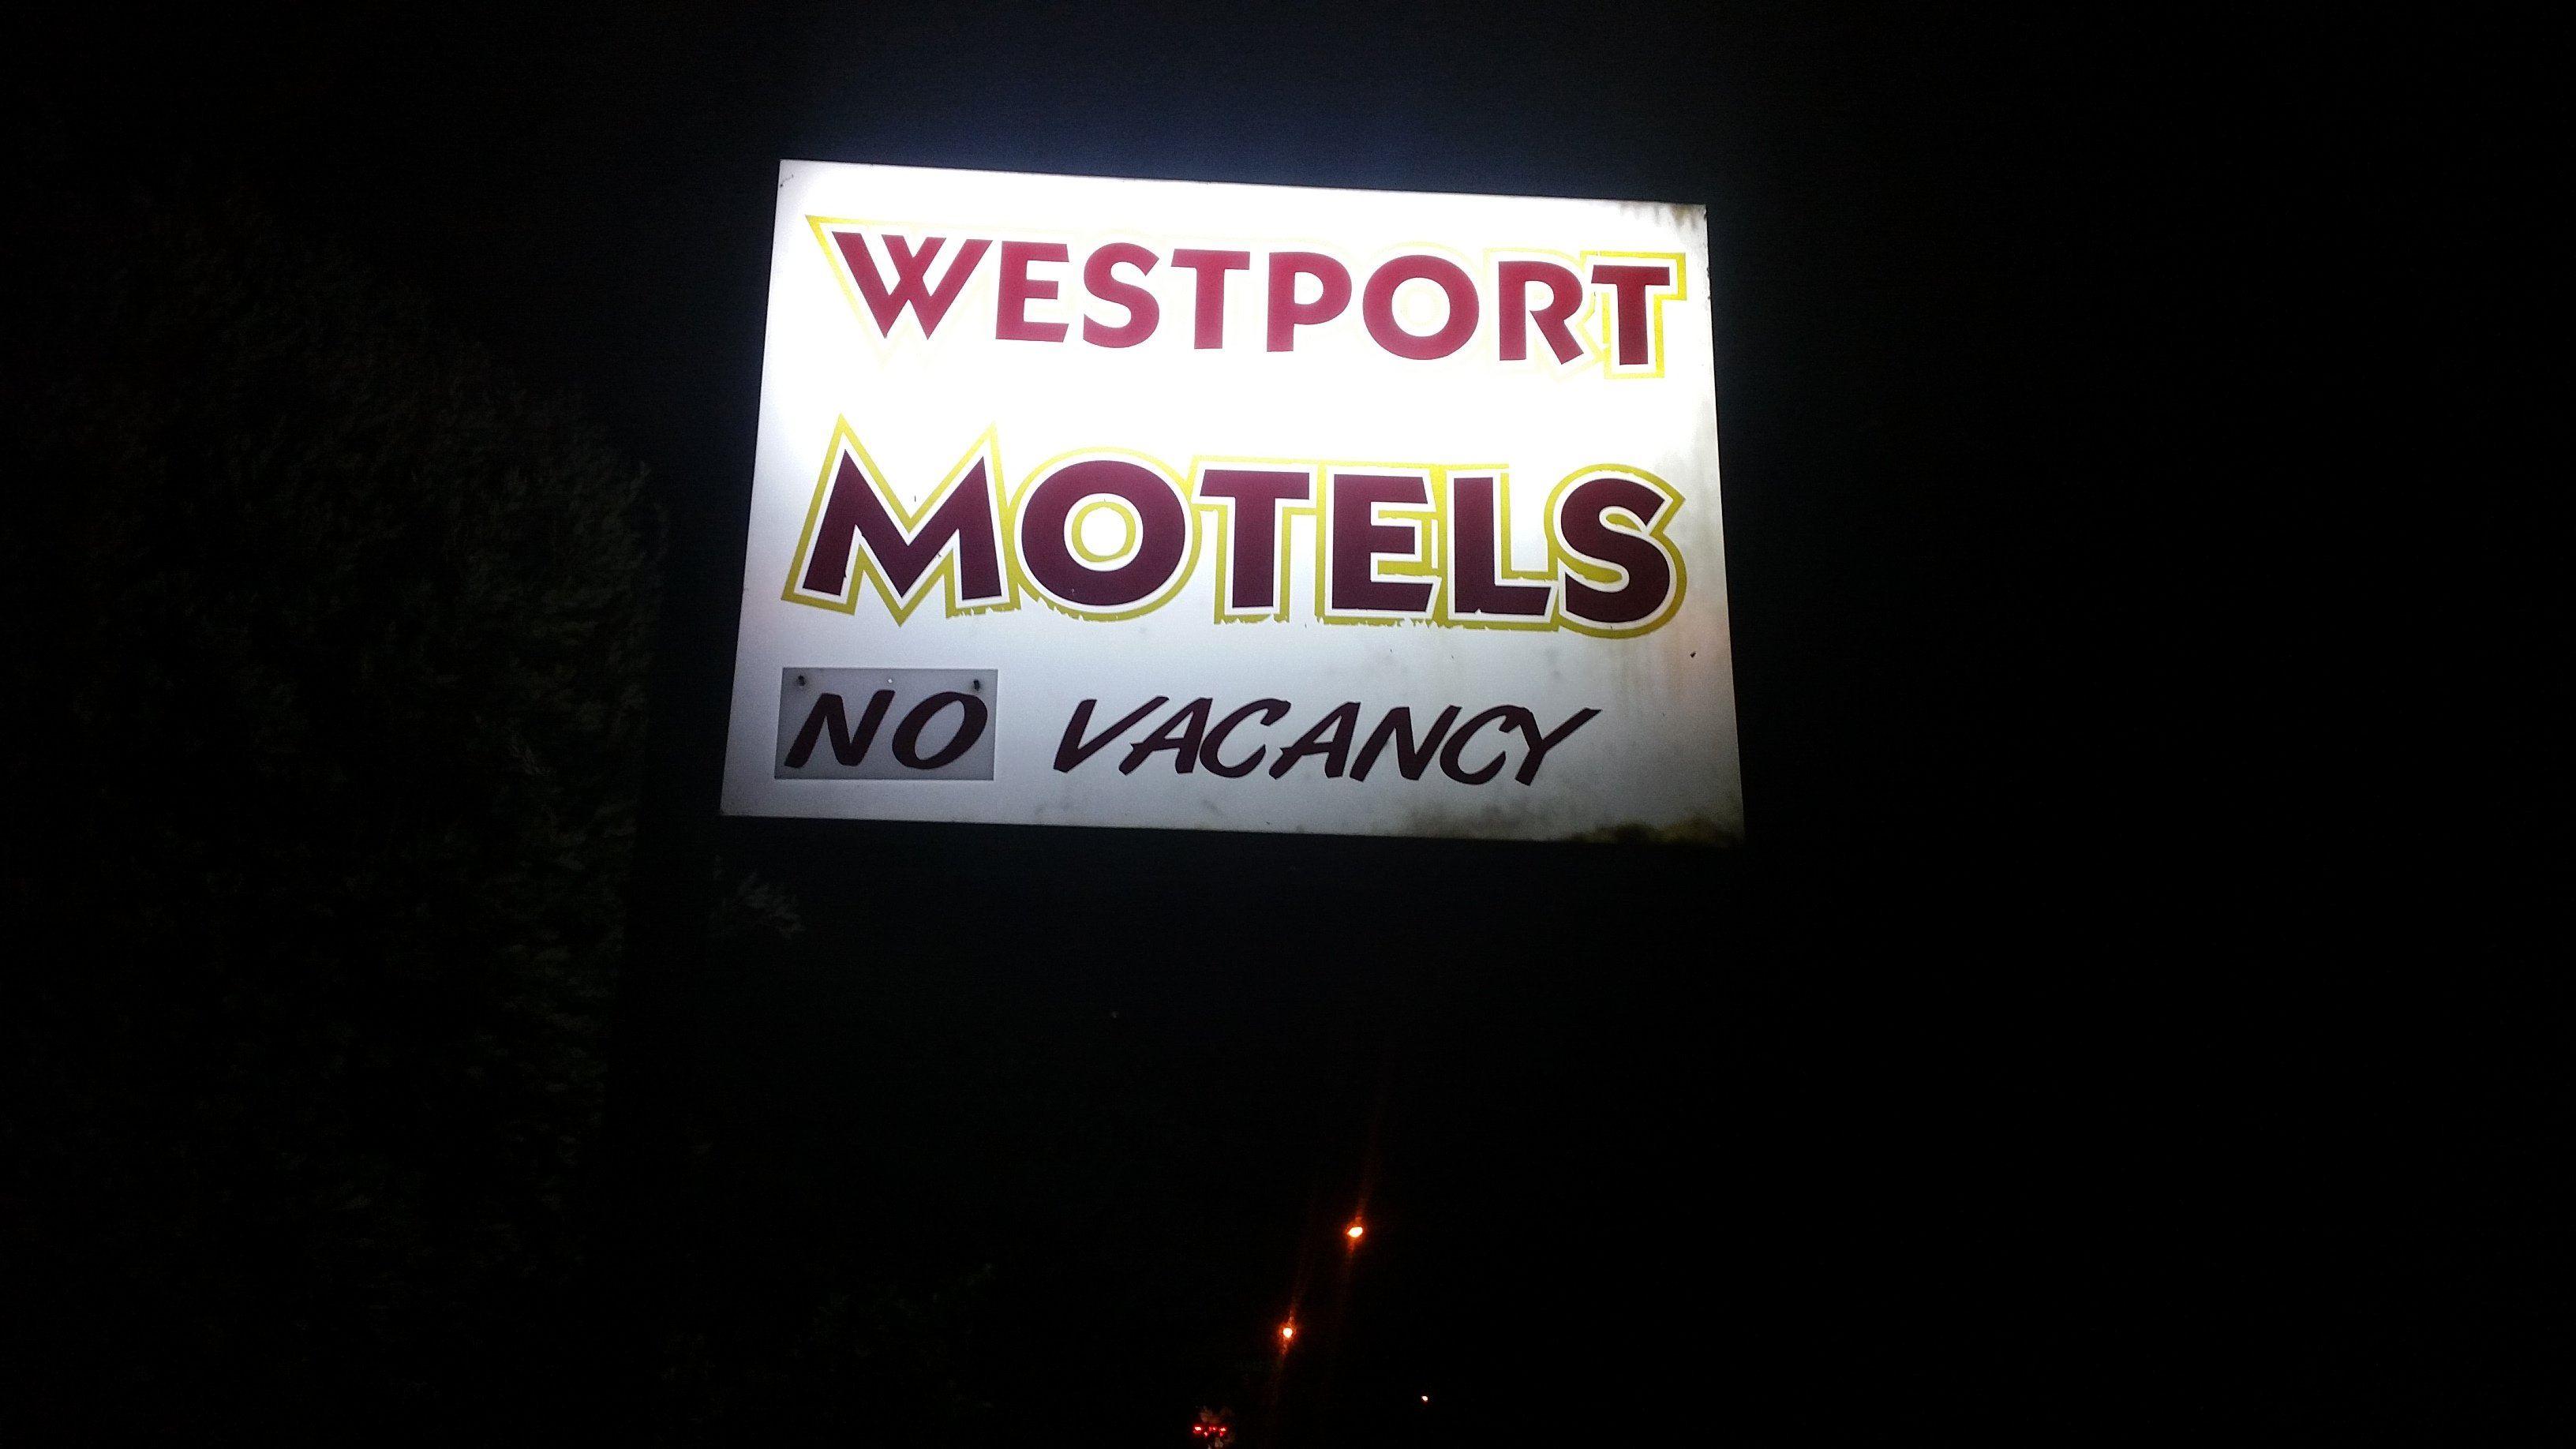 Westport Motels